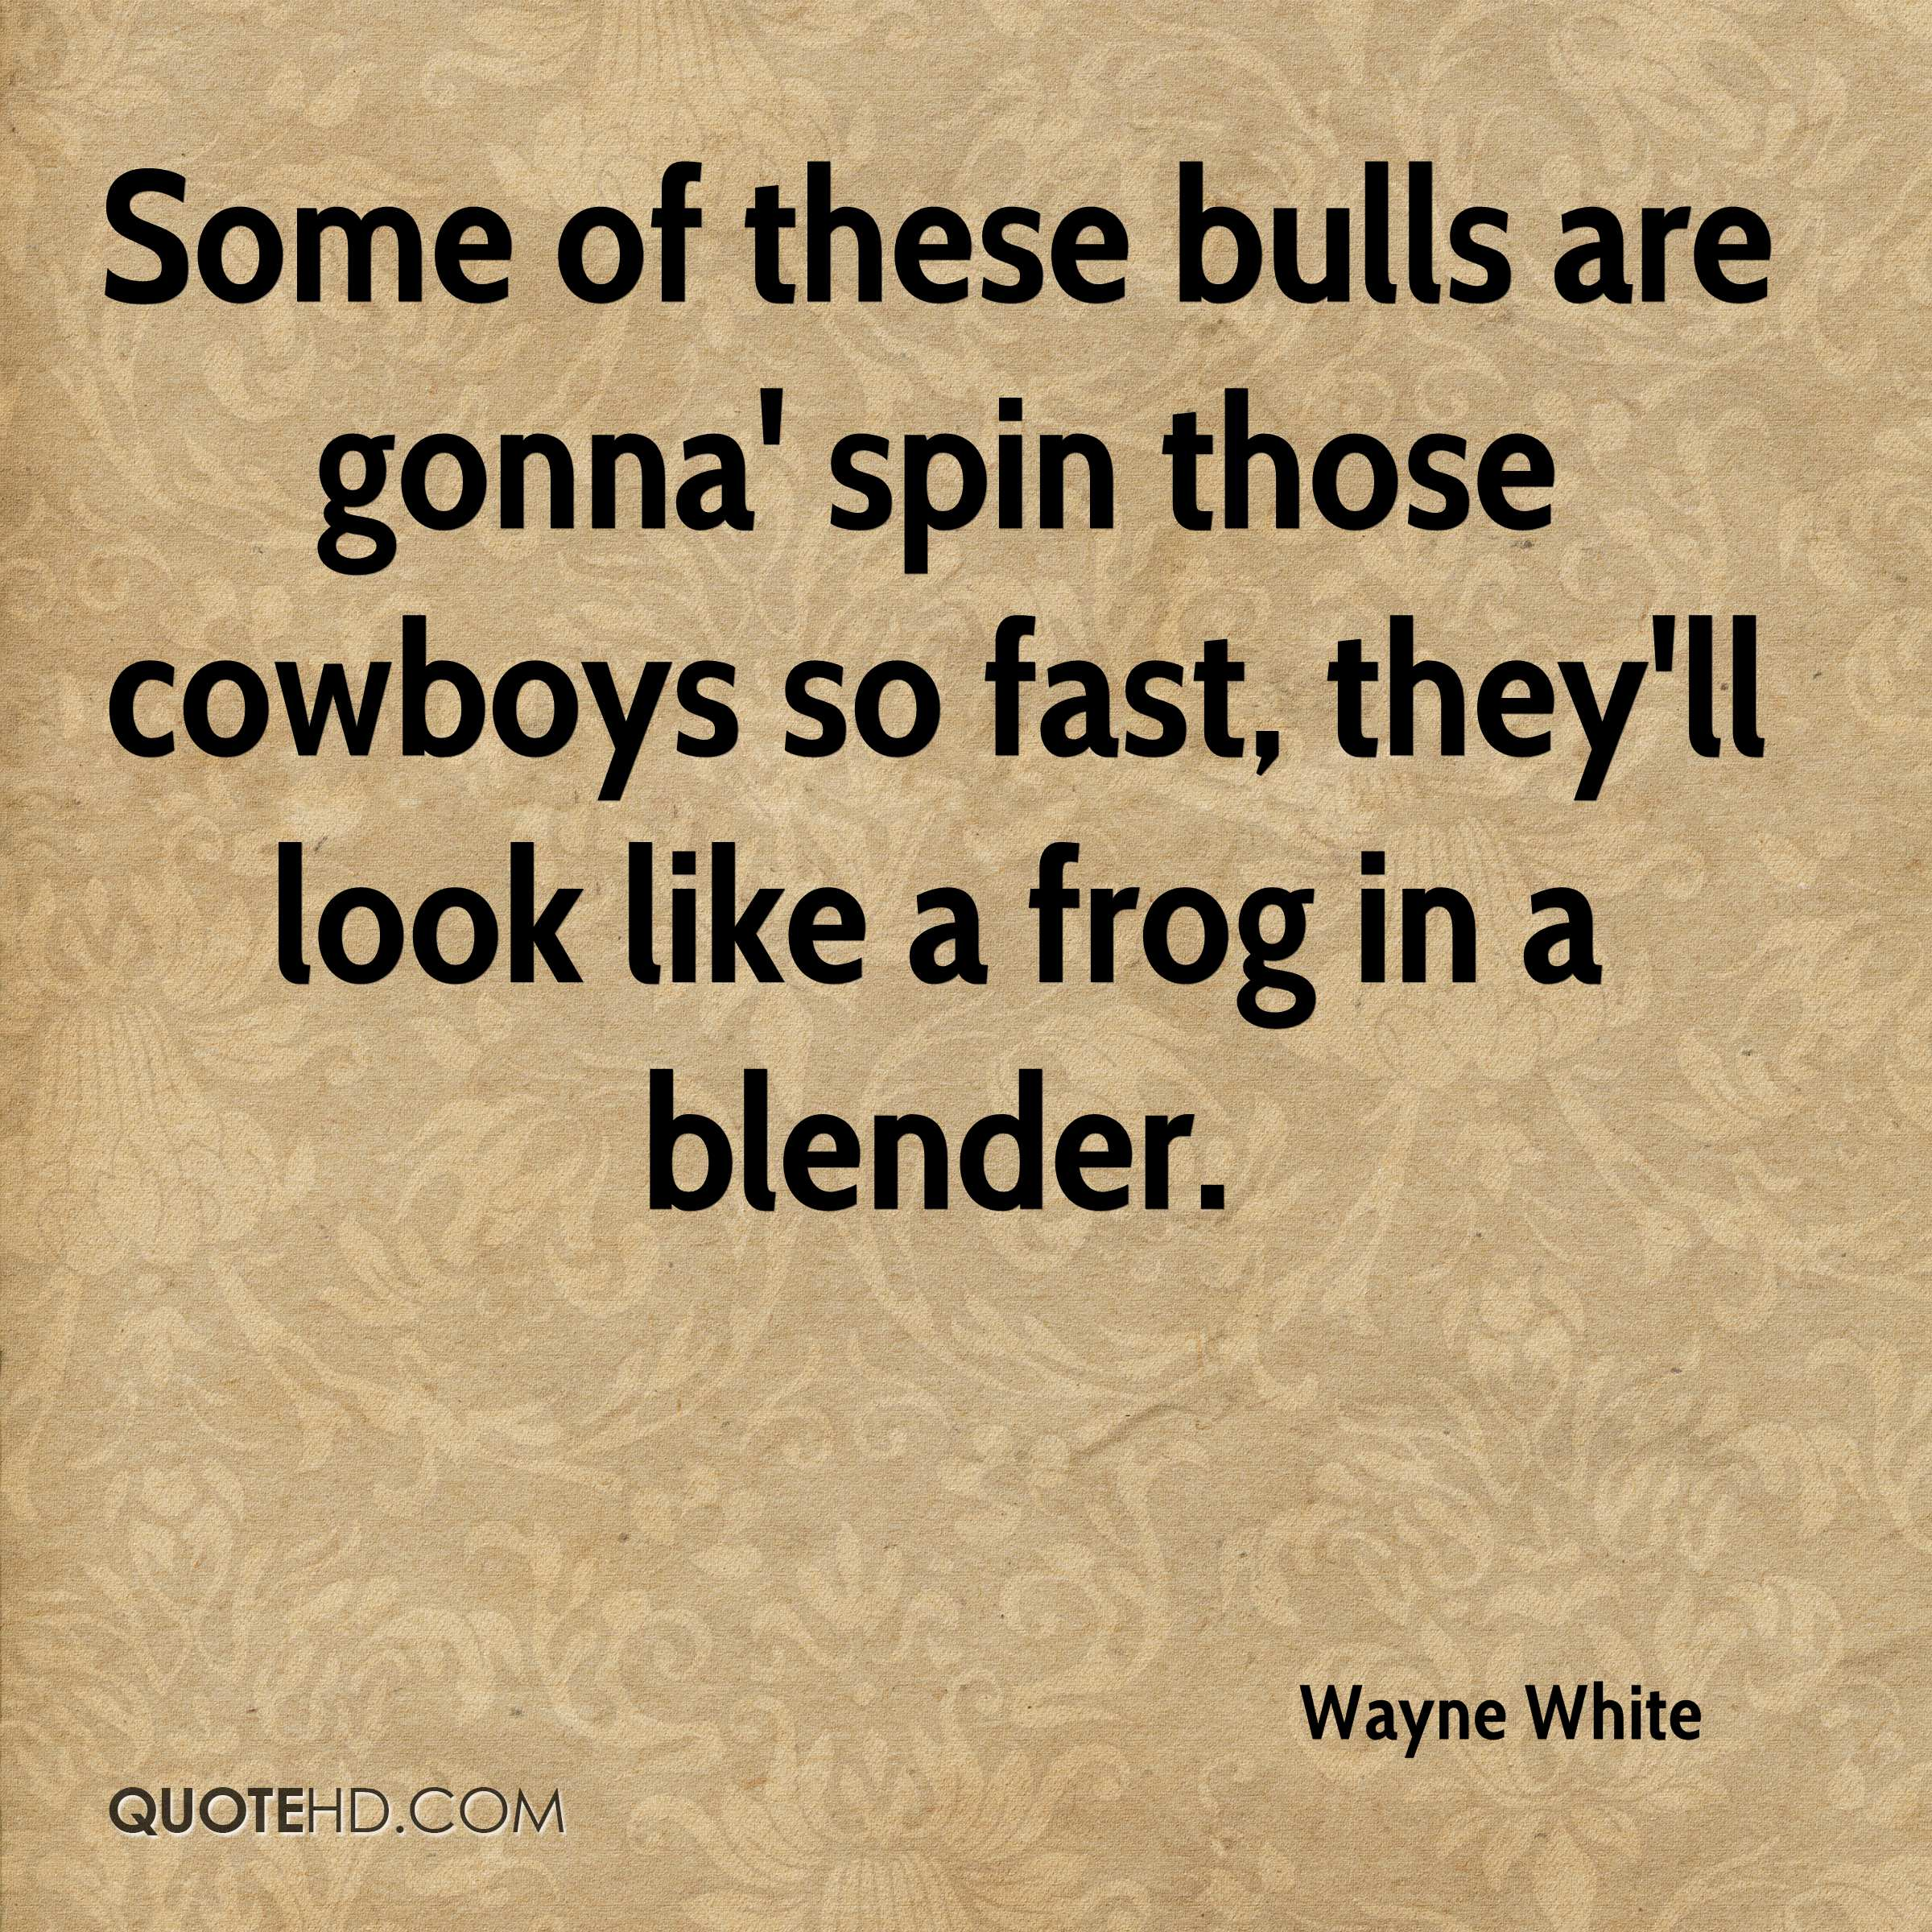 Some of these bulls are gonna' spin those cowboys so fast, they'll look like a frog in a blender.